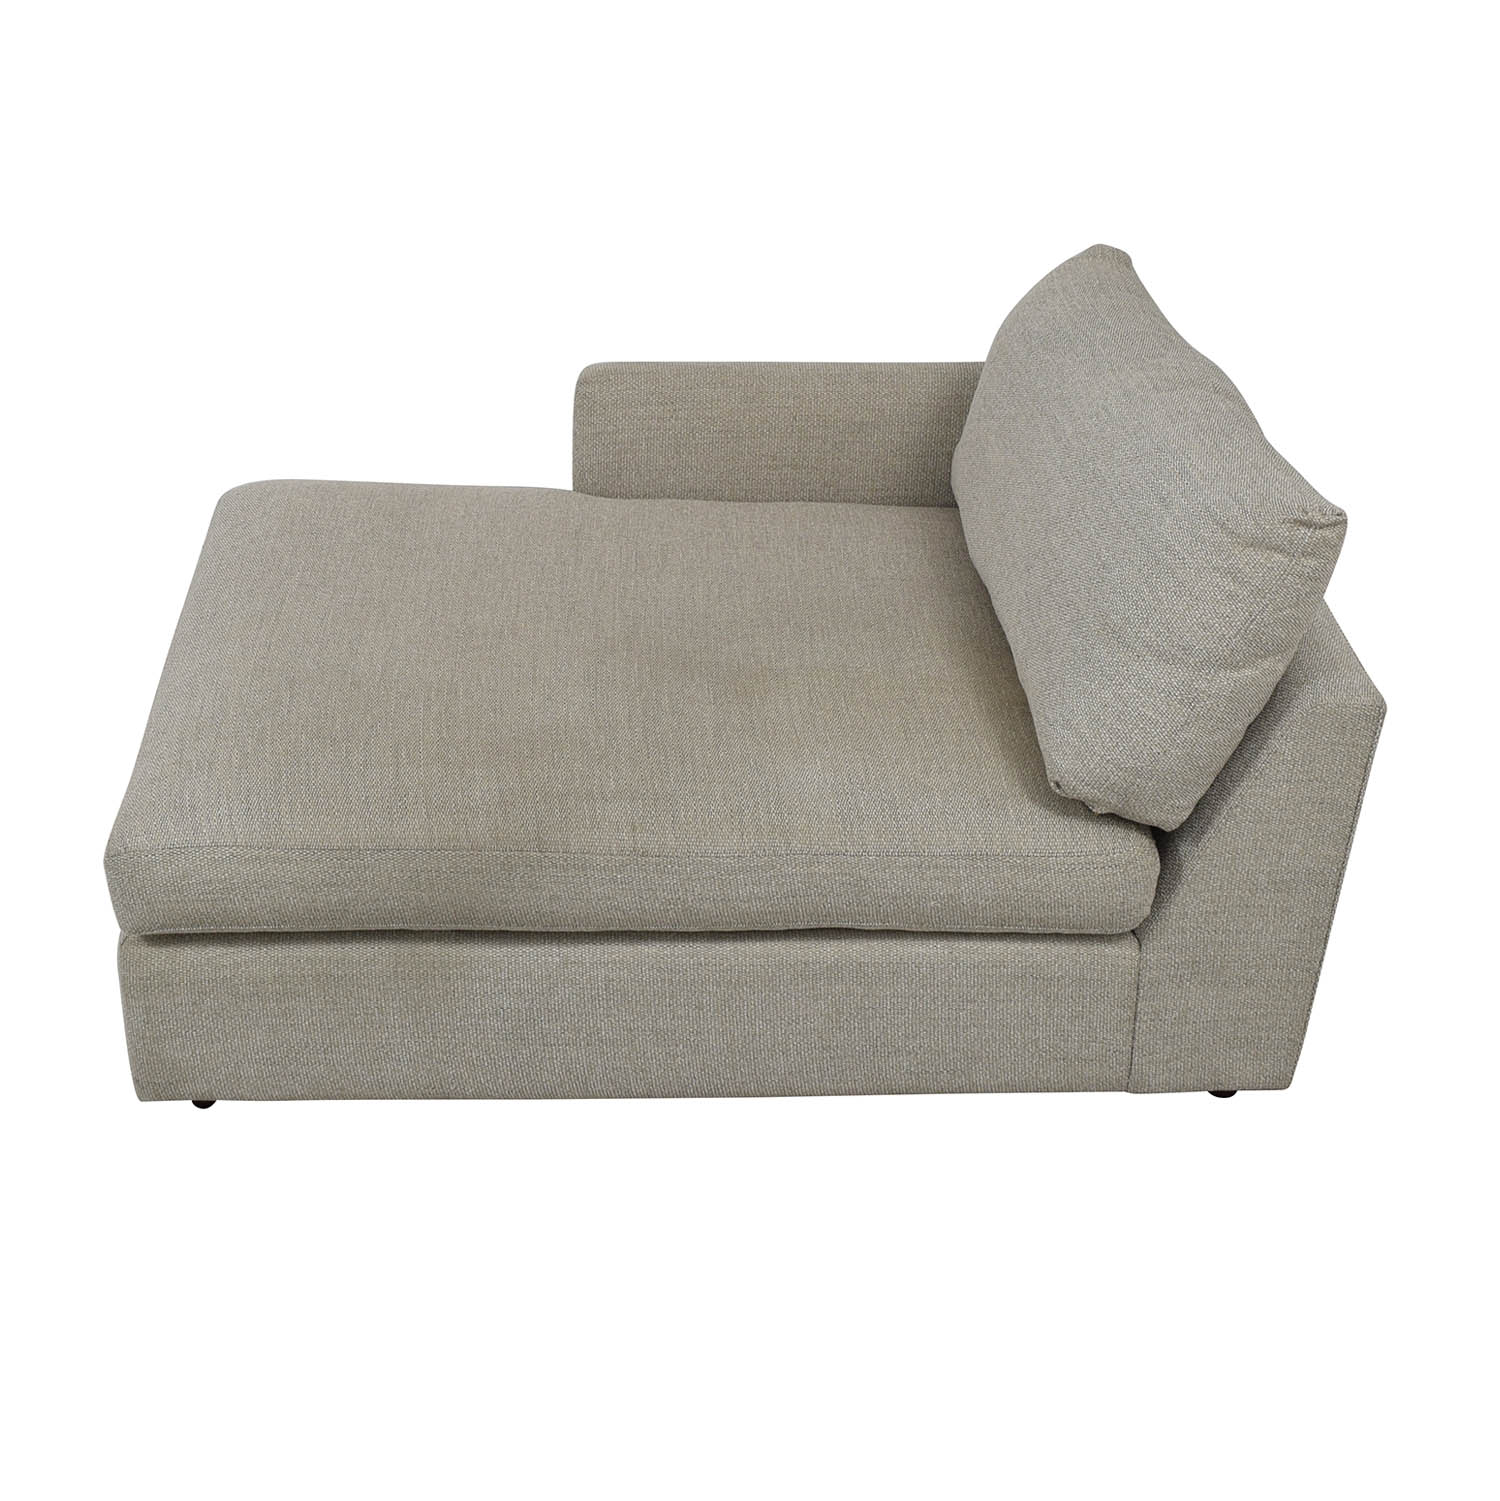 shop Crate & Barrel Lounge II Left Arm Chaise Crate & Barrel Chaises